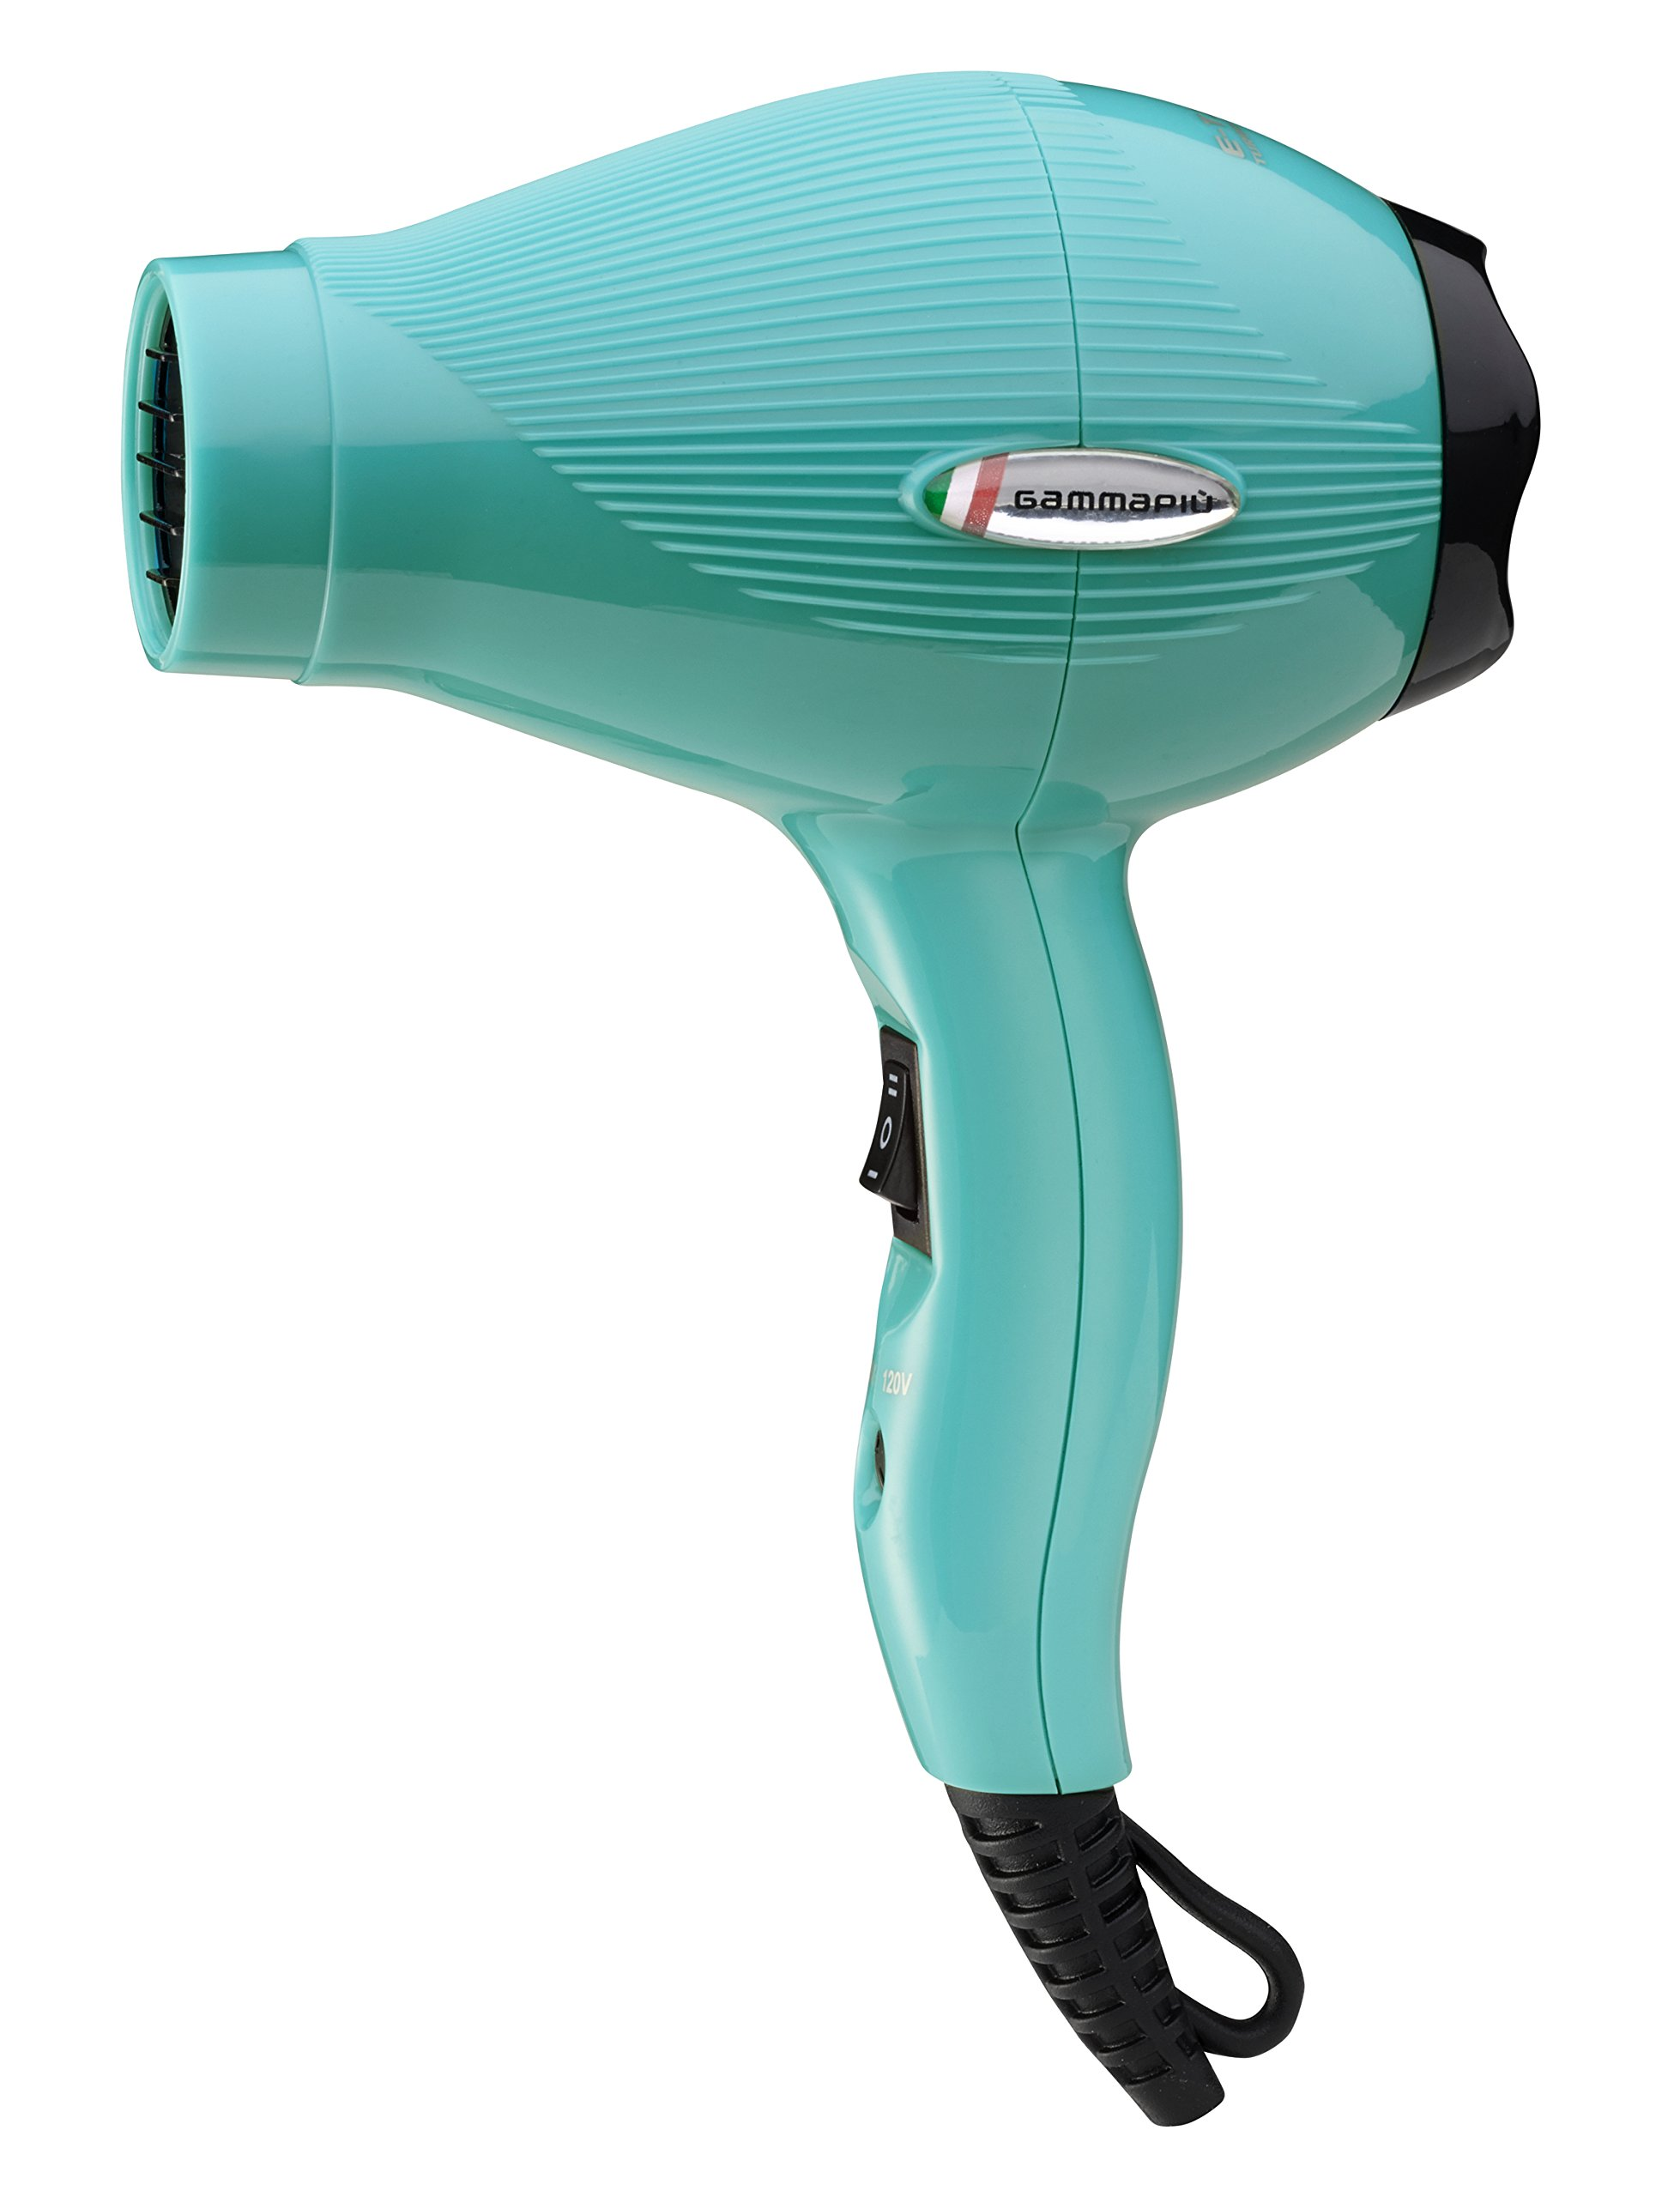 Gammapiu ETC Travel Hair Dryer - Professional Hair Dryer for Travel - Duel Voltage US and European Hair Dryer - Turquoise